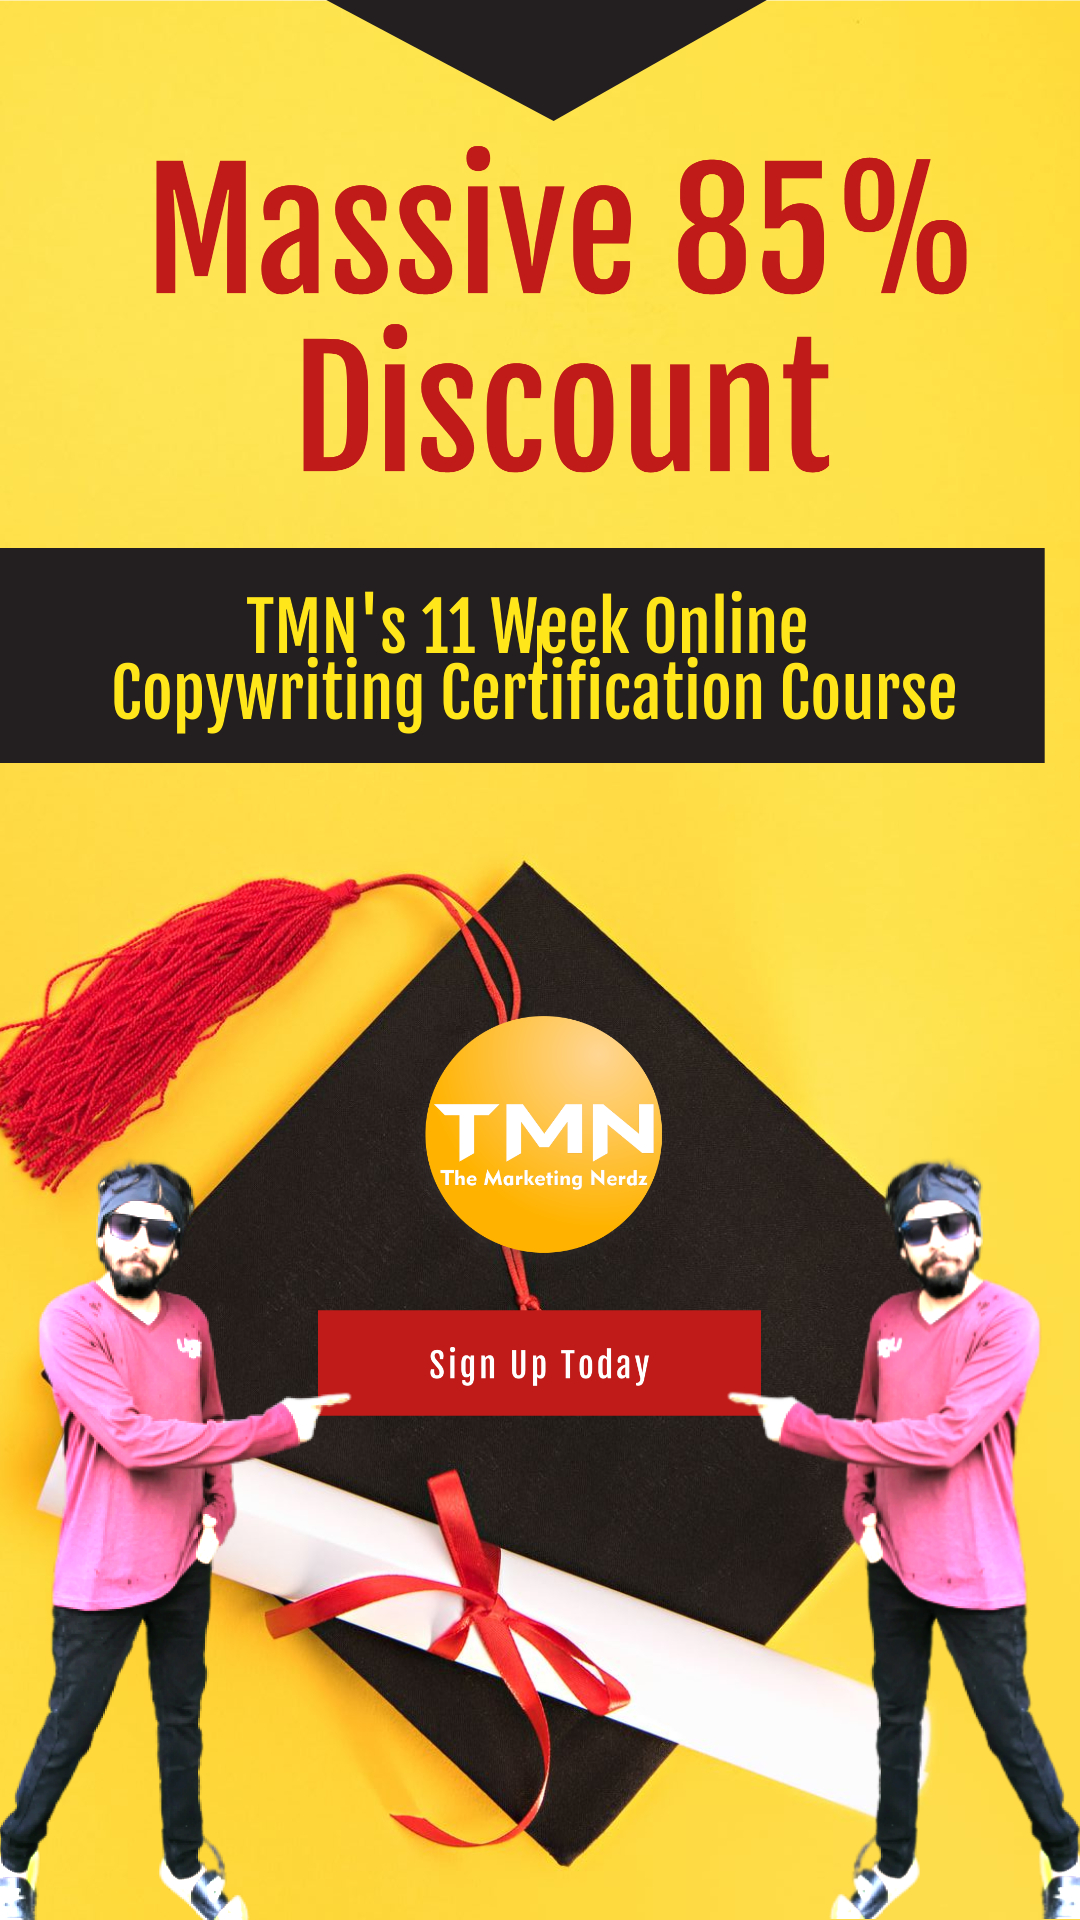 TMN's Copywriting Course